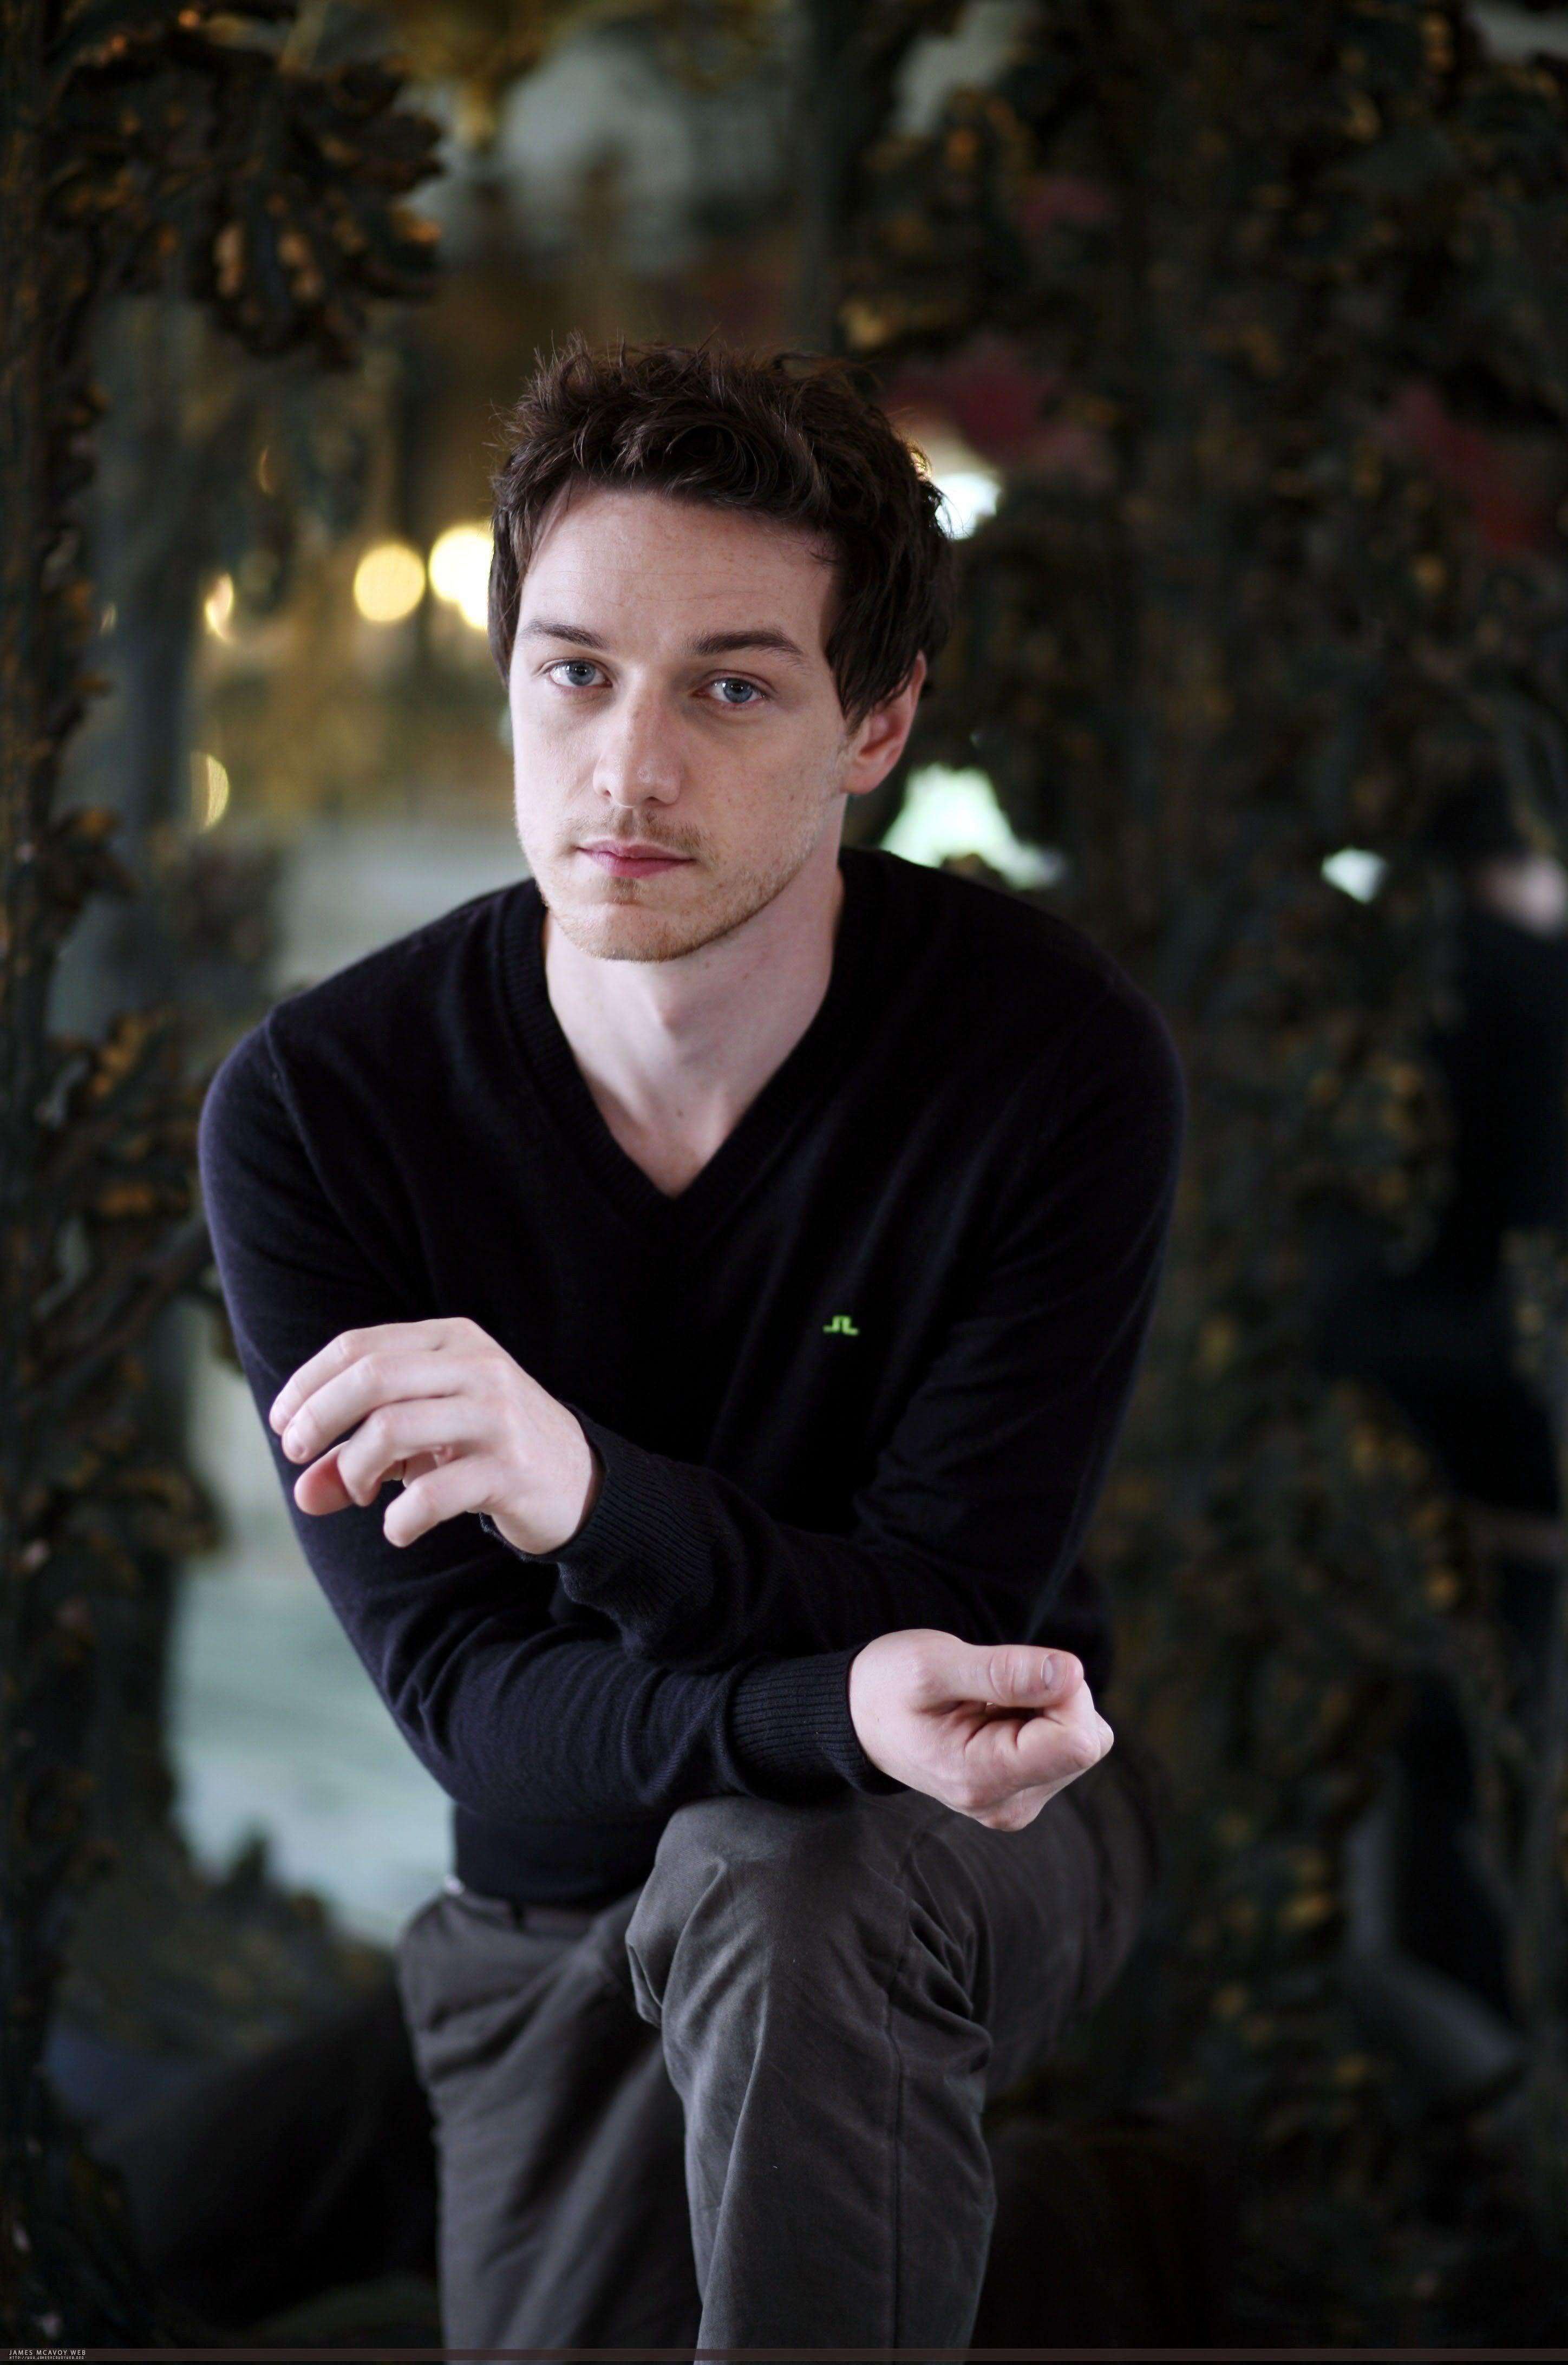 James McAvoy photo 148 of 279 pics, wallpapers